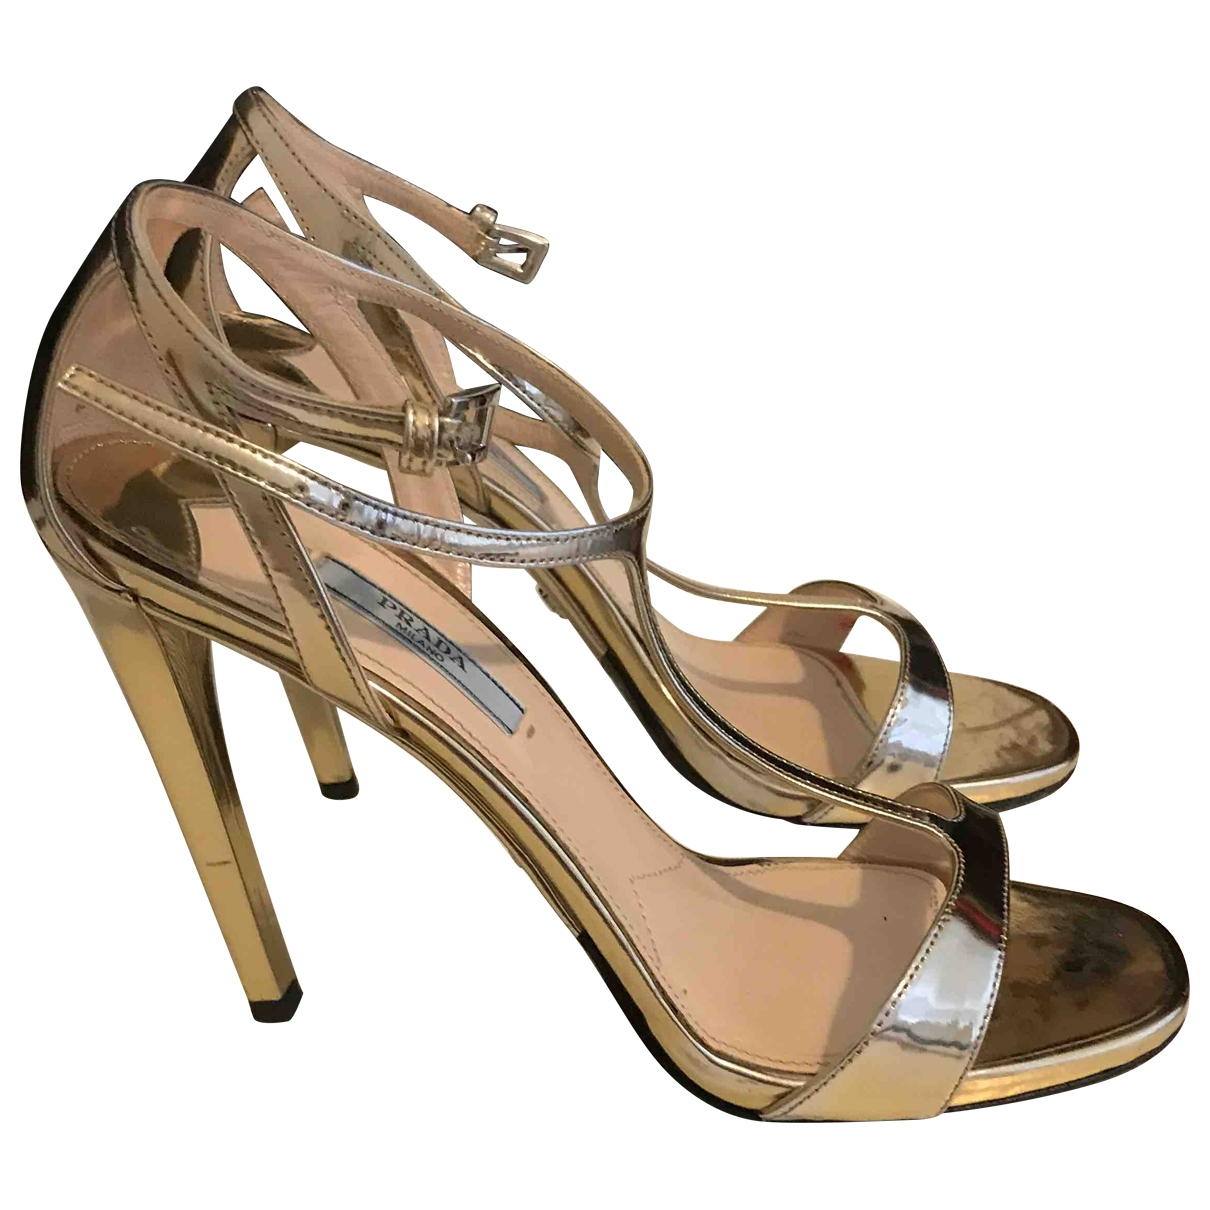 Prada \N Gold Patent leather Sandals for Women 39 EU